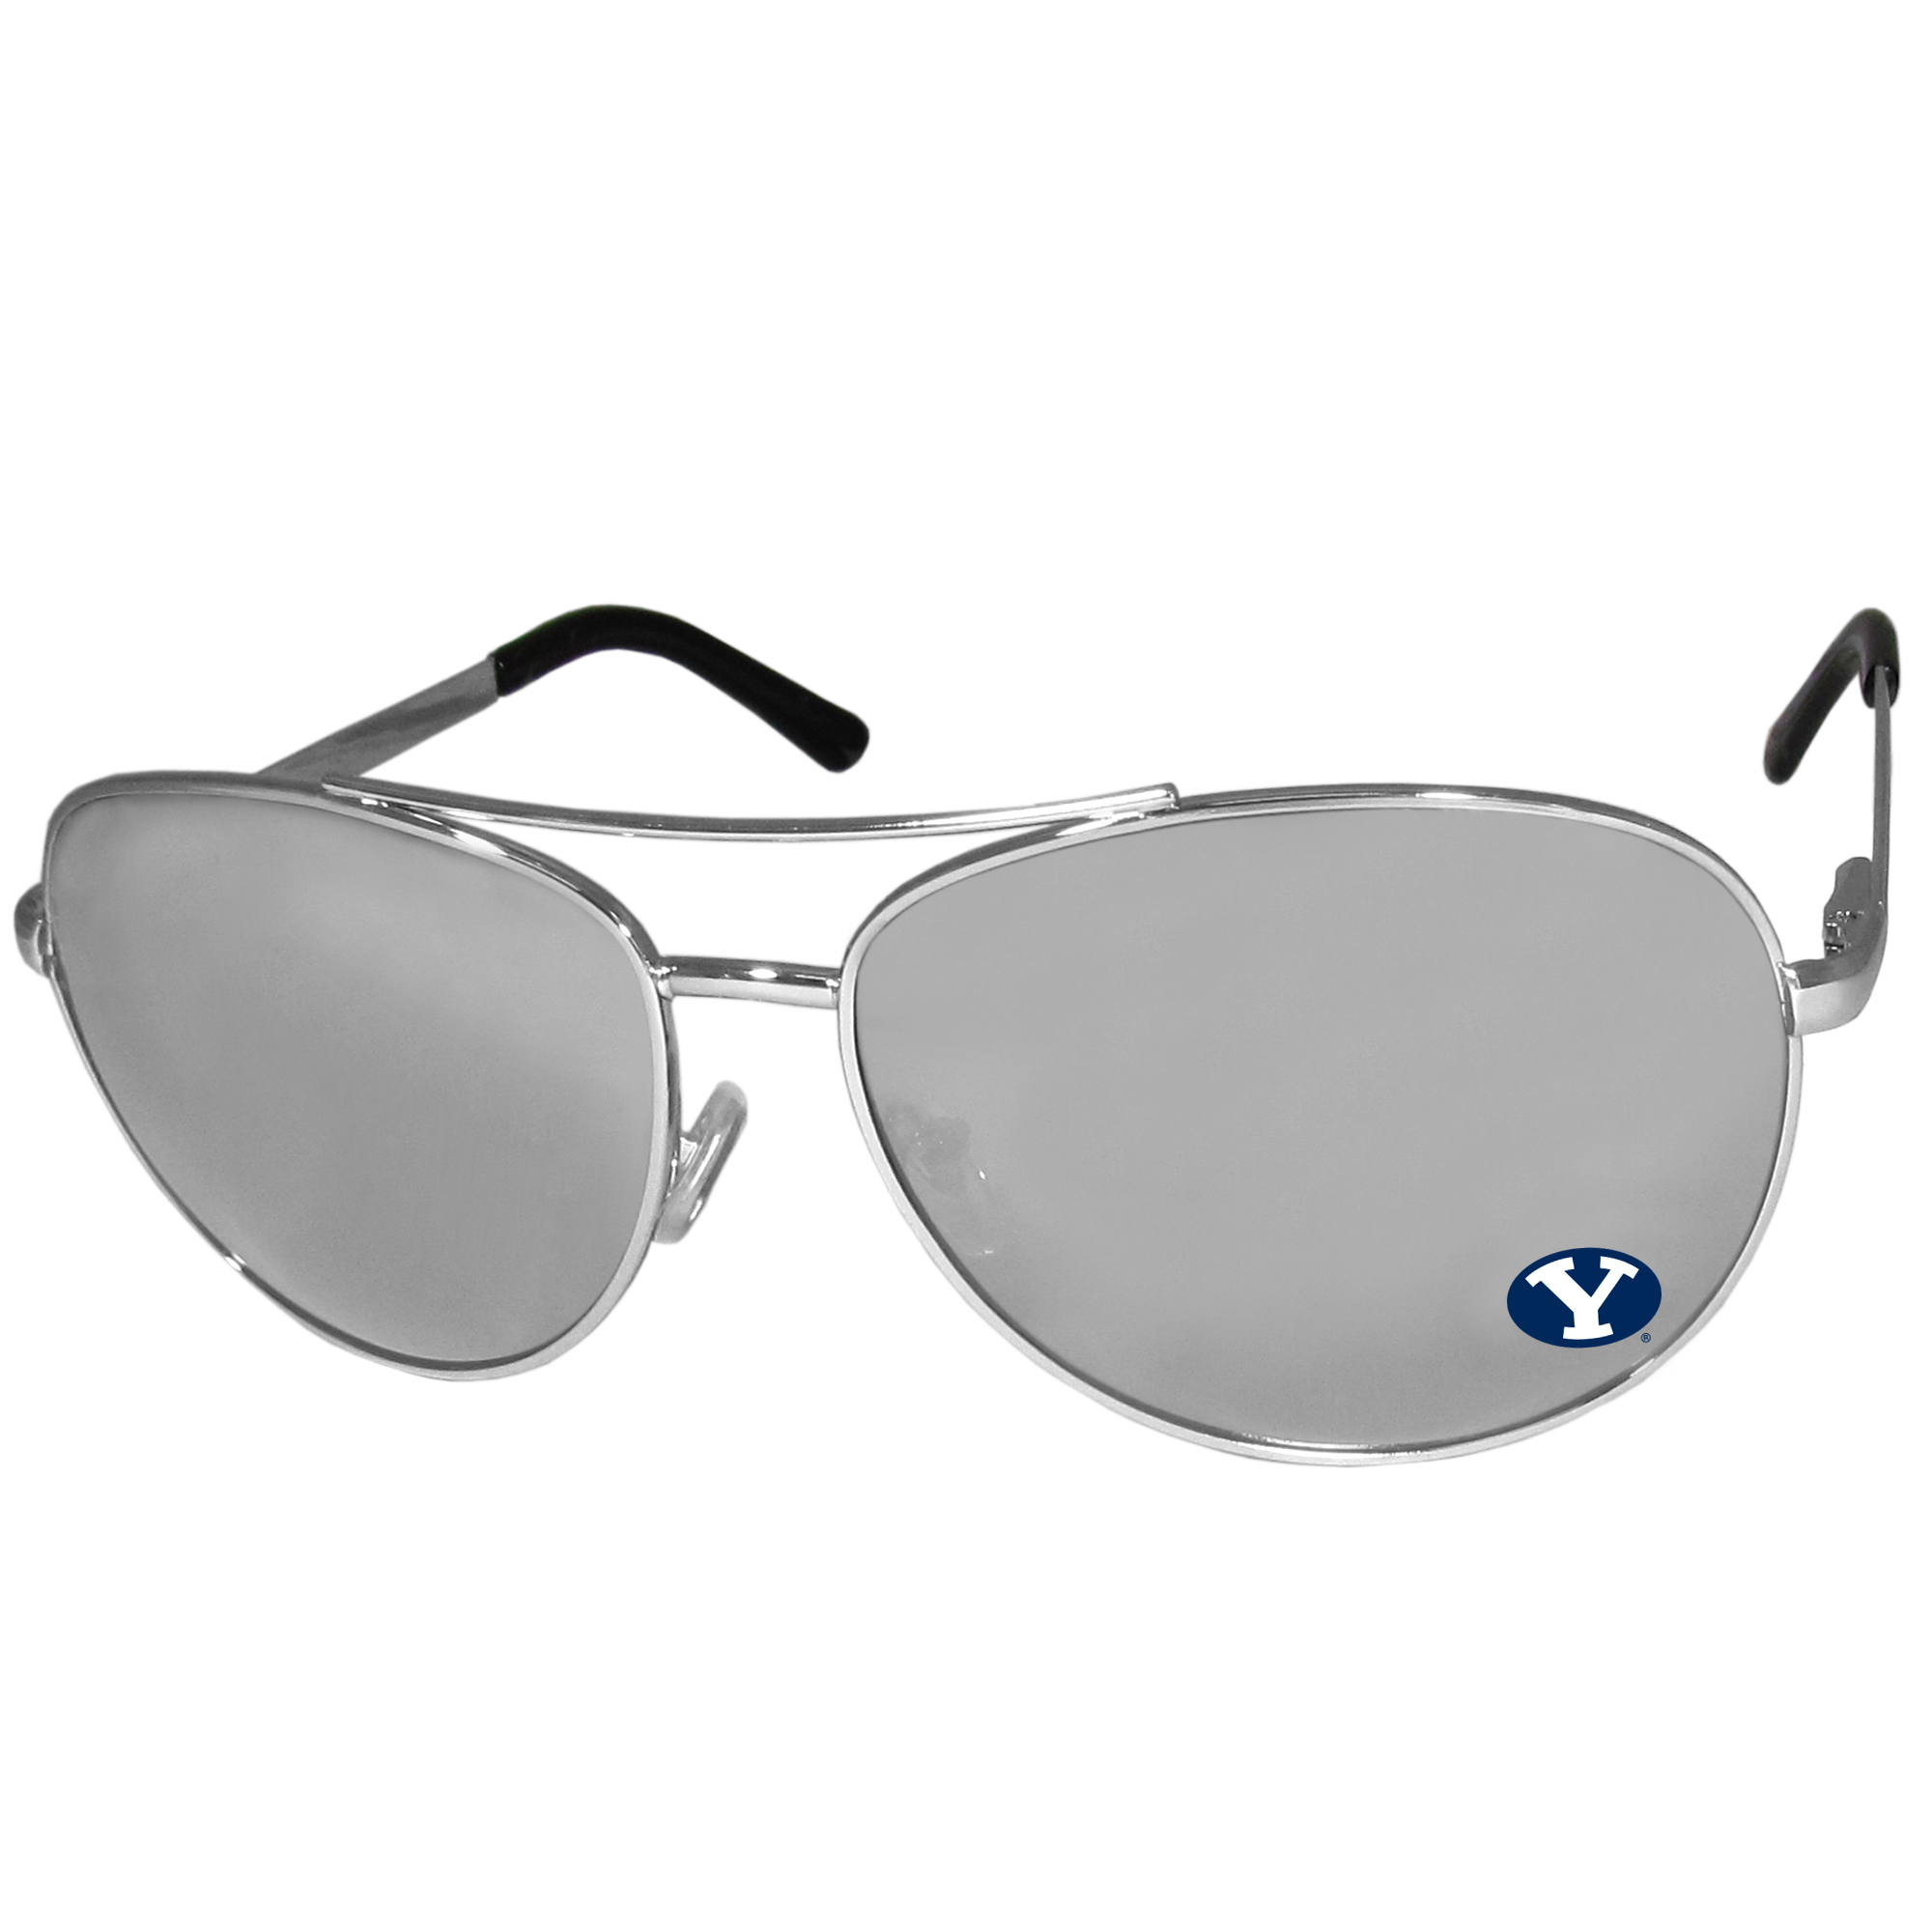 BYU Cougars Aviator Sunglasses - Our aviator sunglasses have the iconic aviator style with mirrored lenses and metal frames. The glasses feature a silk screened BYU Cougars logo in the corner of the lense. 100% UVA/UVB protection.